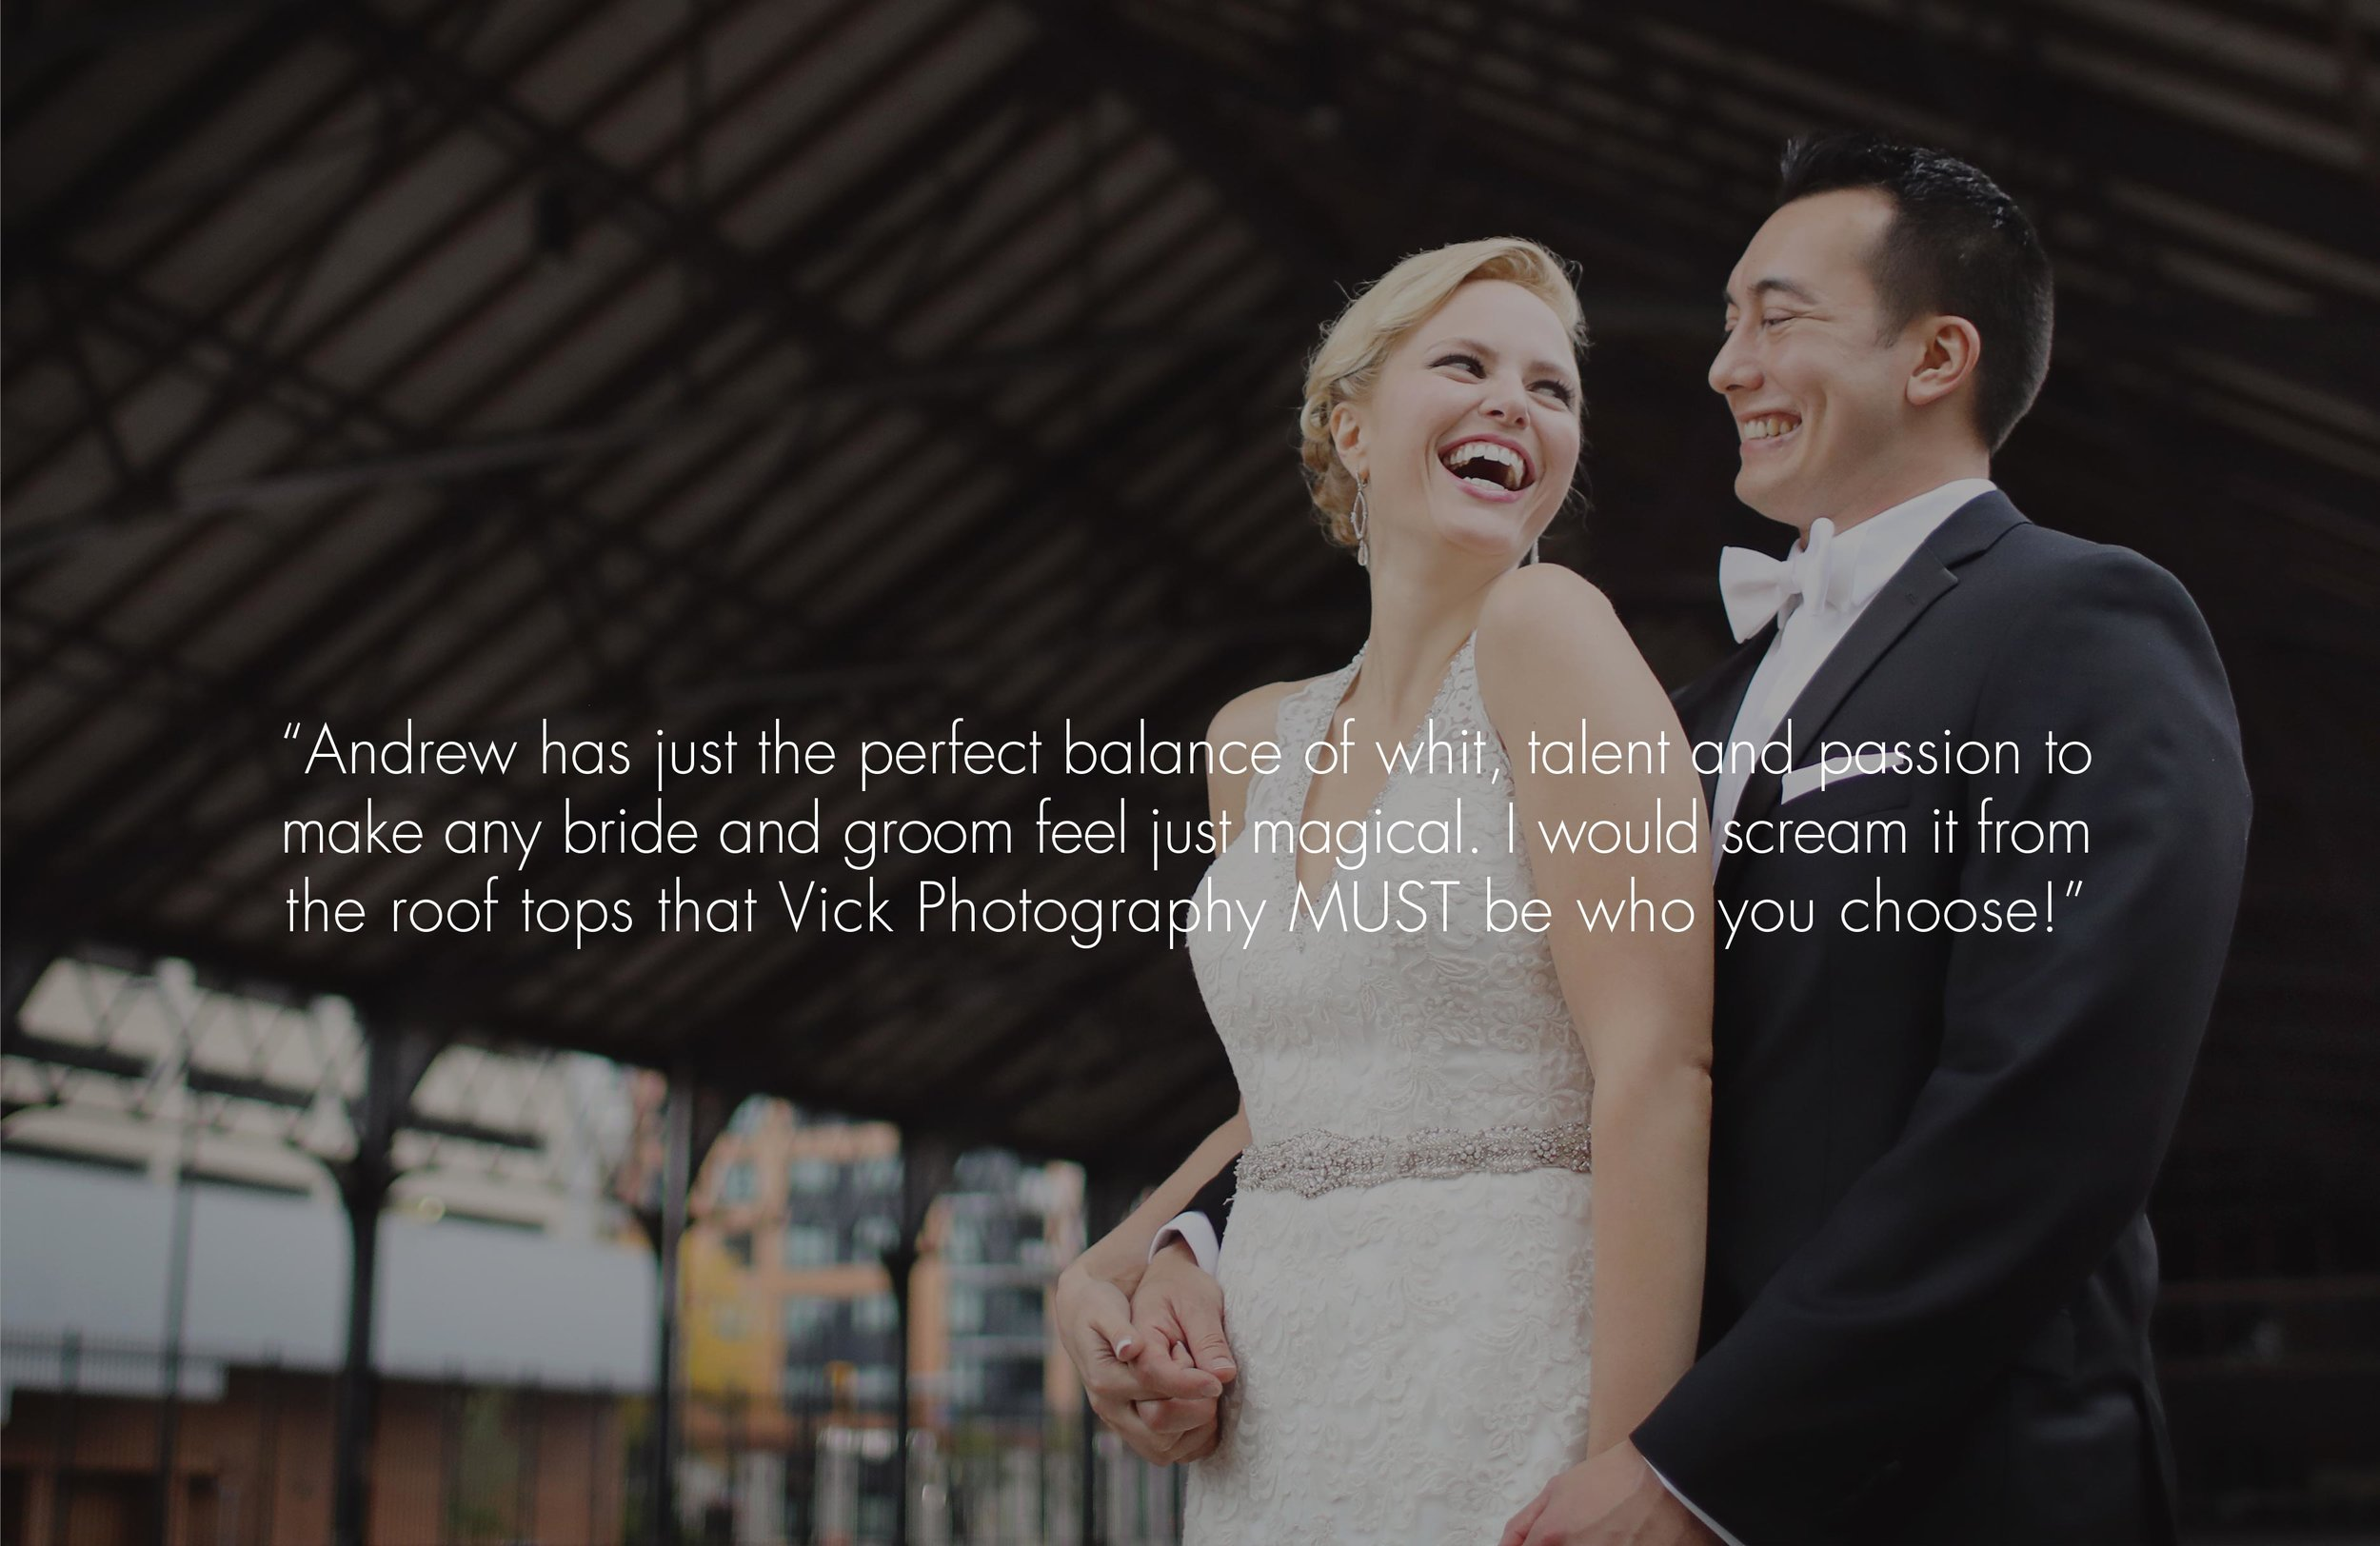 20-Wedding-Photography-by-Vick-Photography-Quote-Testimonial.jpg